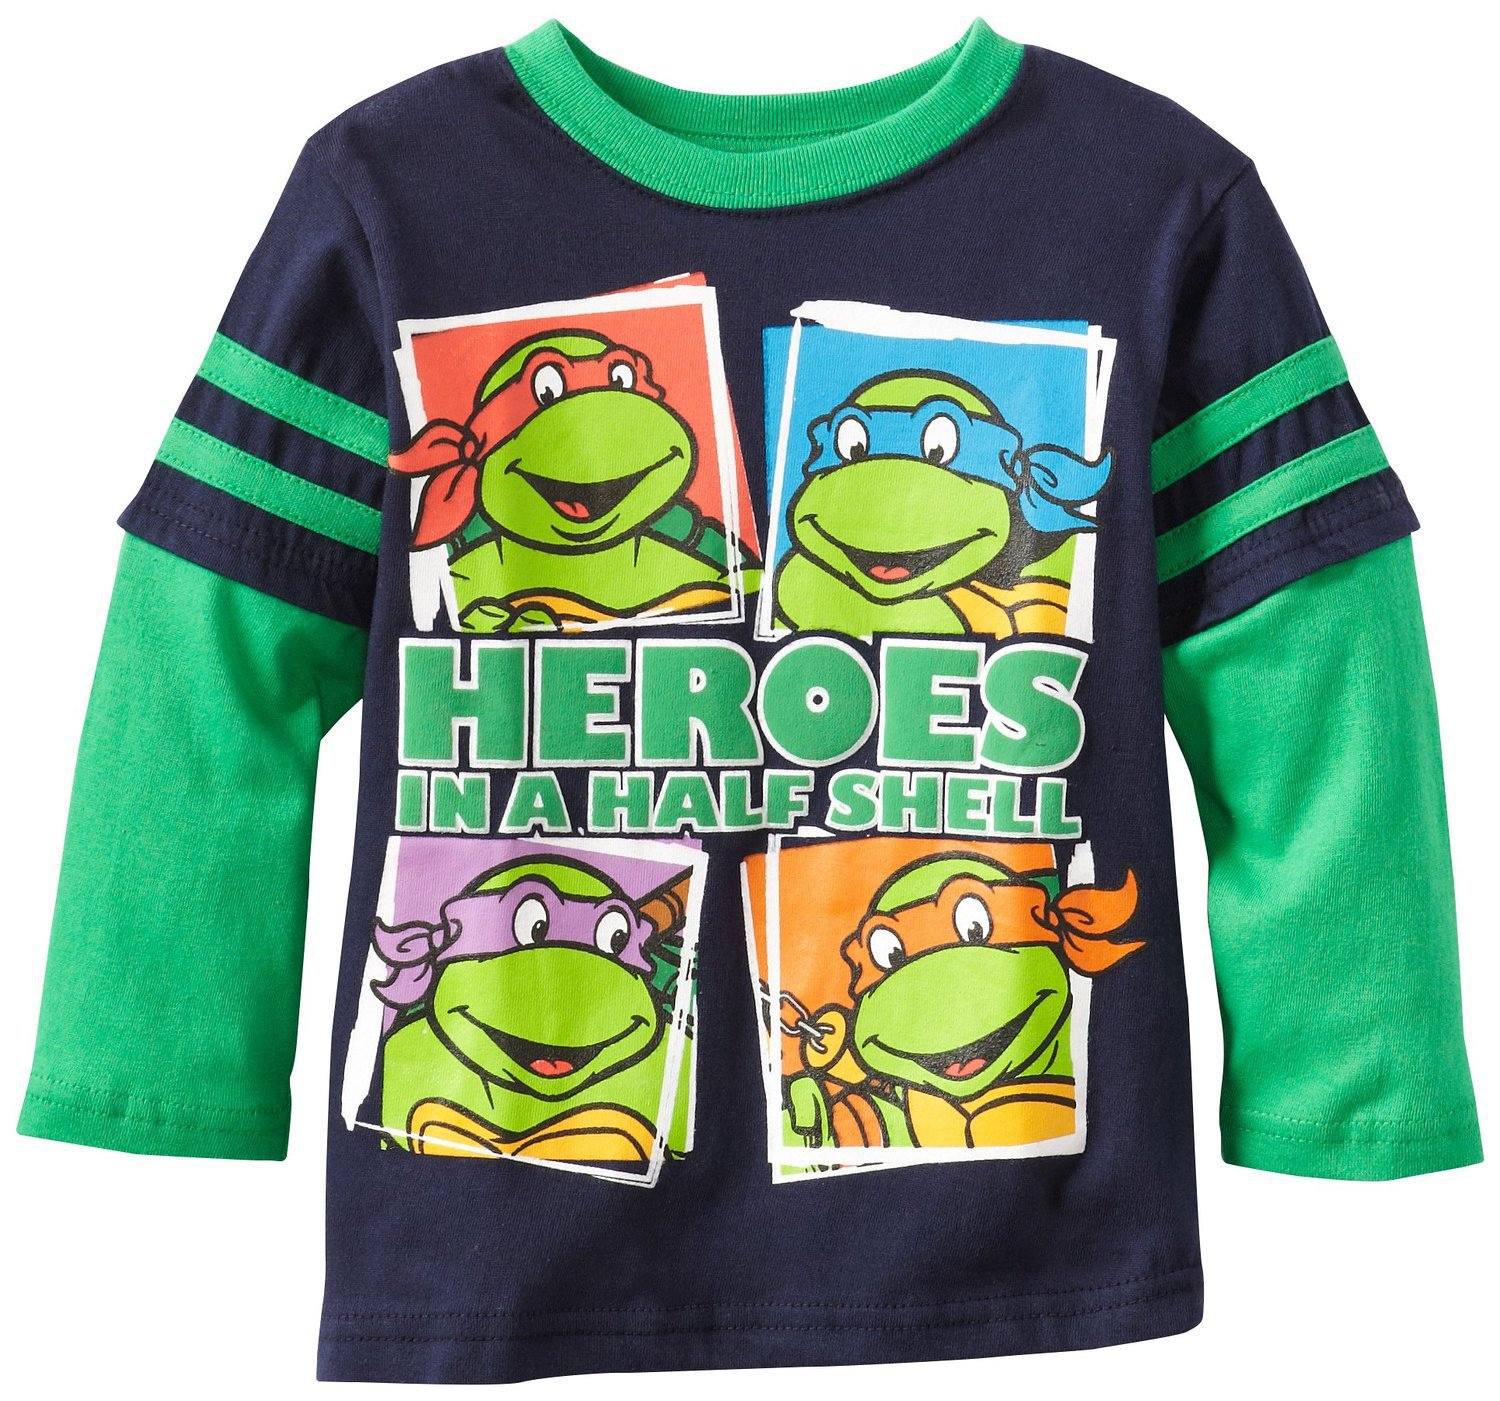 Spring And Autumn Childrenswear Teenage Mutant Ninja Turtles Children Base Shirt T-shirt BOY'S Base Shirt Long-sleeved T-shirt N